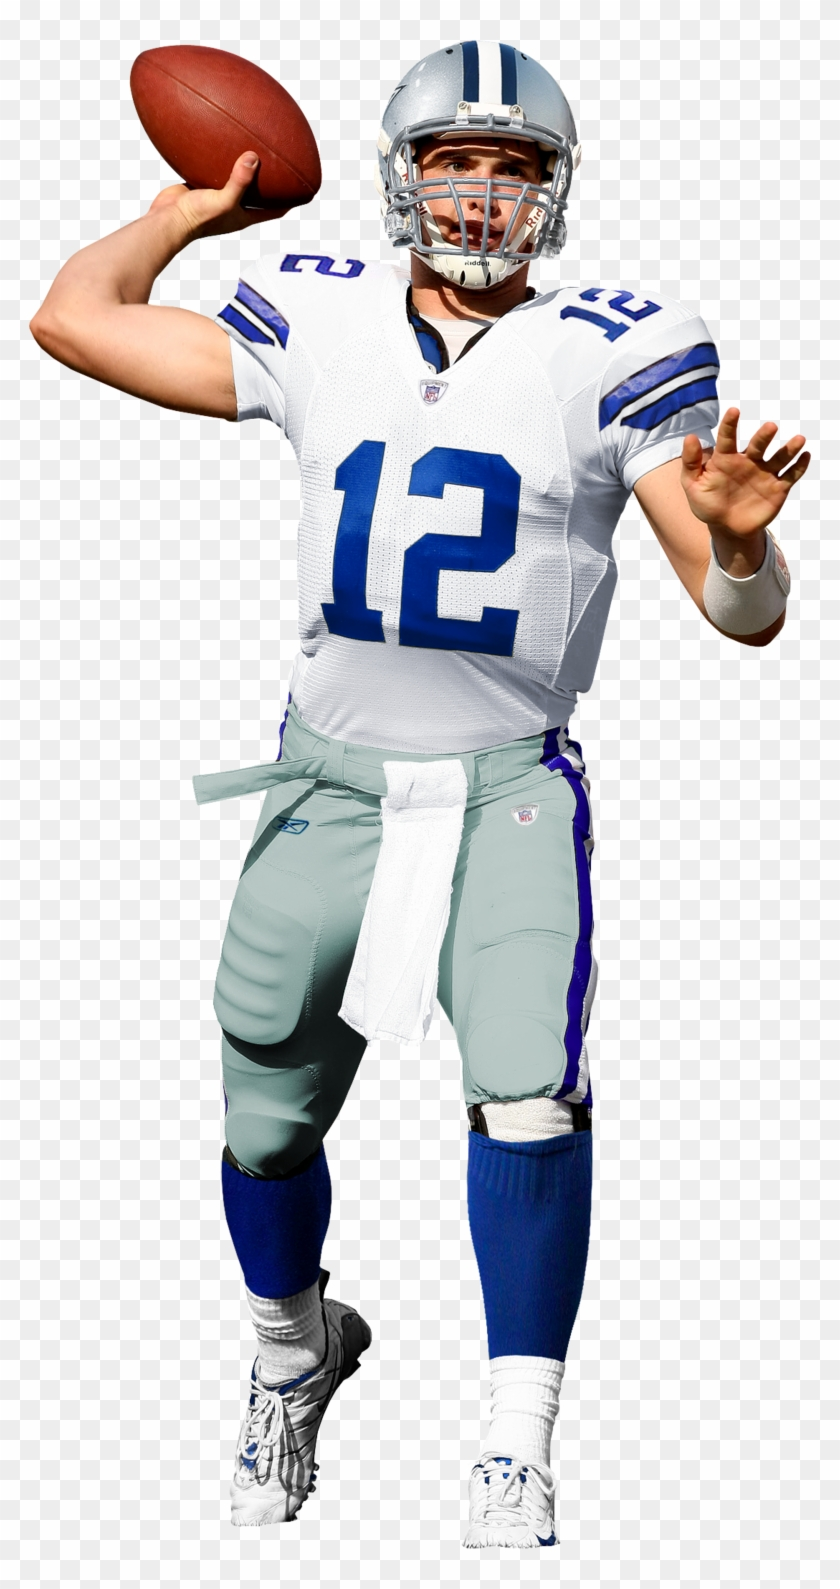 best cheap 7385c d0268 Png Romo Images Png - Andrew Luck Jersey Png, Transparent ...